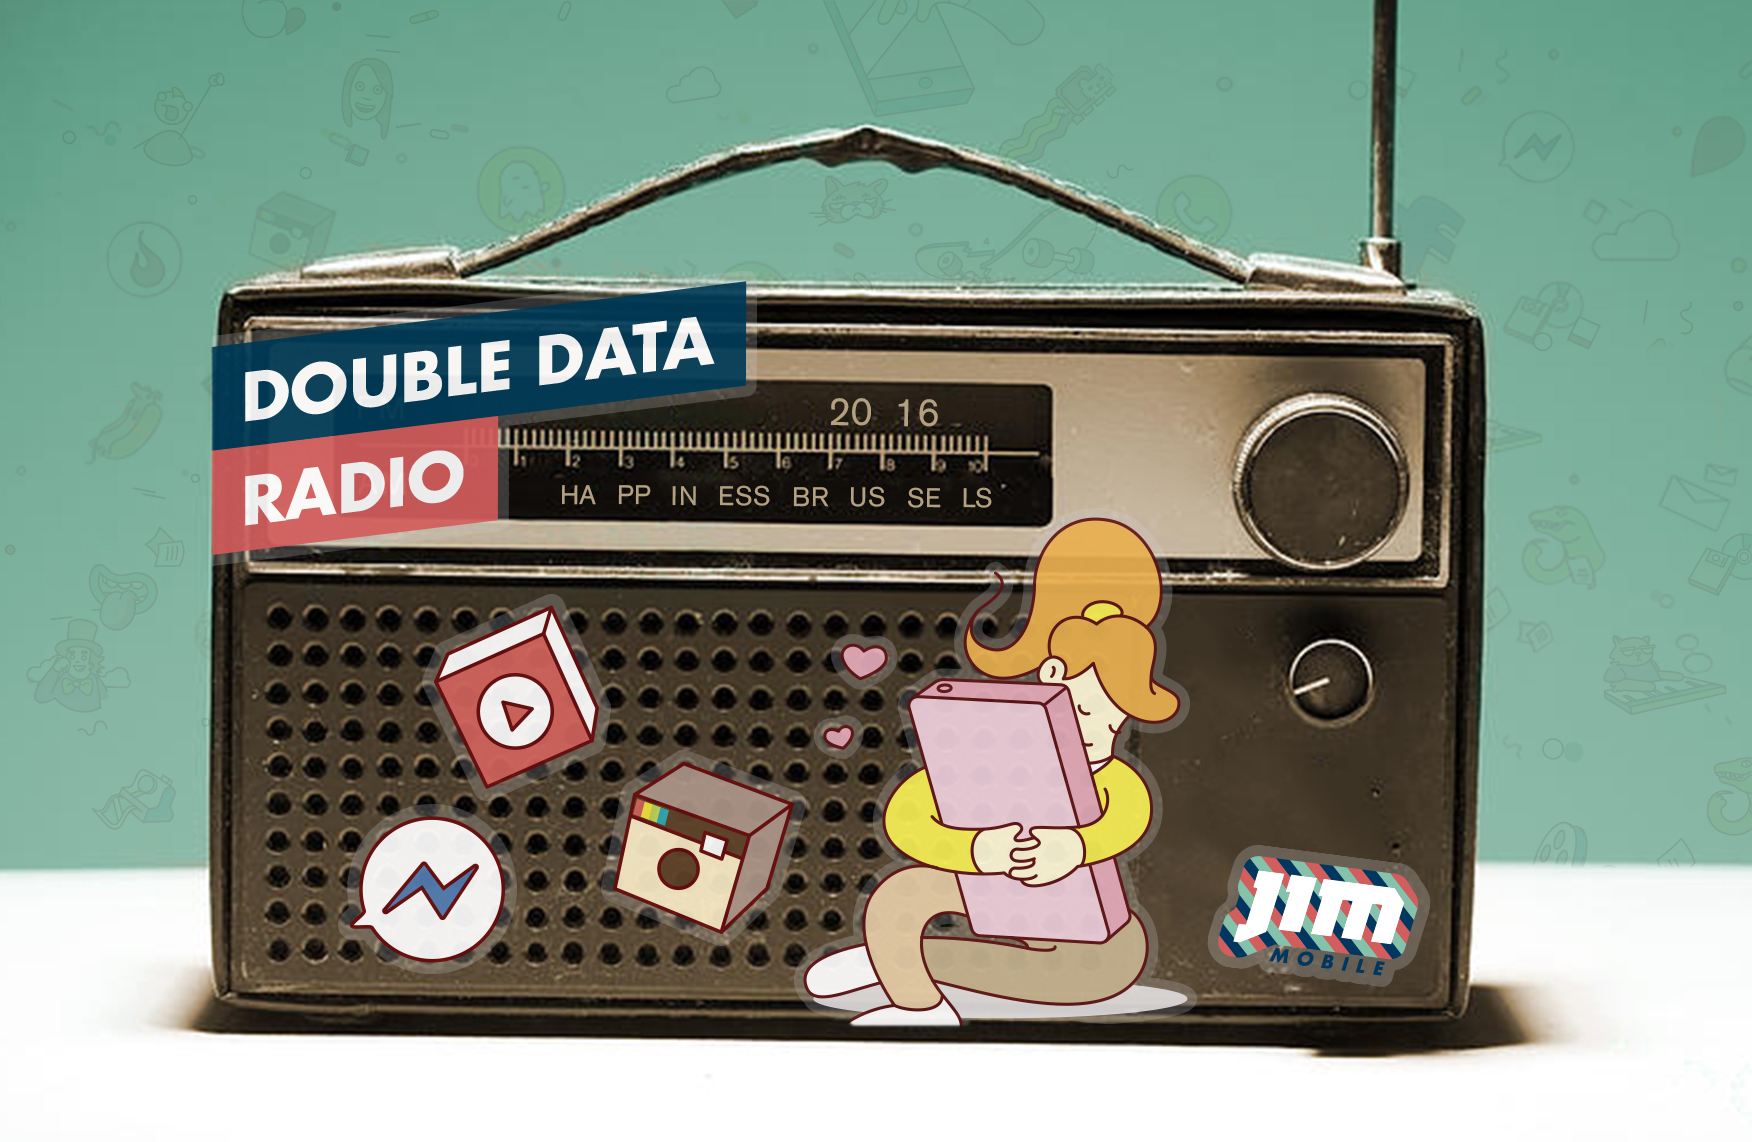 "<span style=""color: #777777"">📱Jim Mobile <B>Double Data</B> </span>- radio - 2016 Happiness"